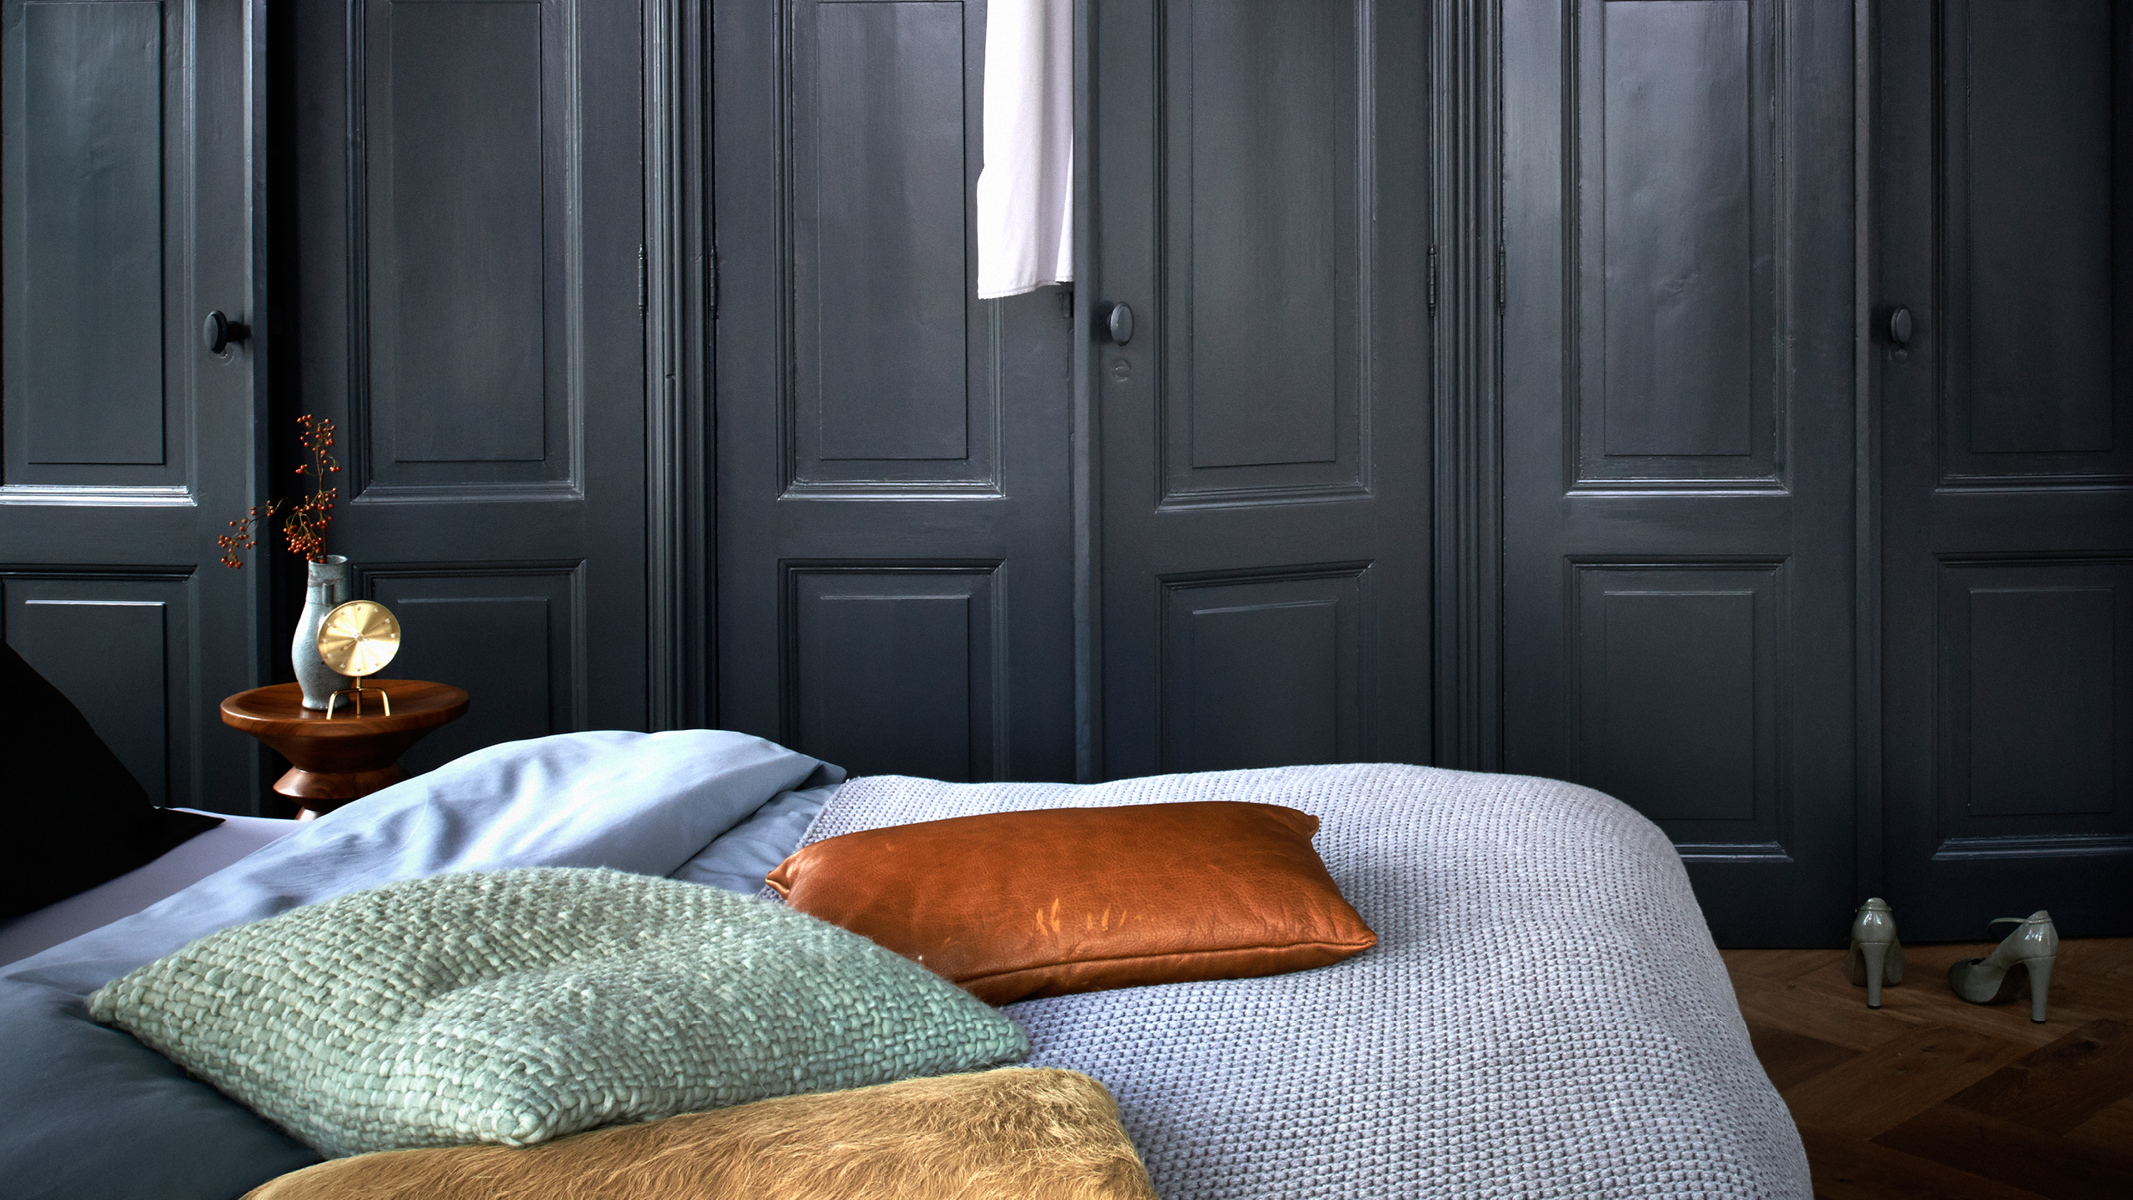 Daring decorators may like to try darker shades of neutrals for a dramatic yet cosy feel in the bedroom.